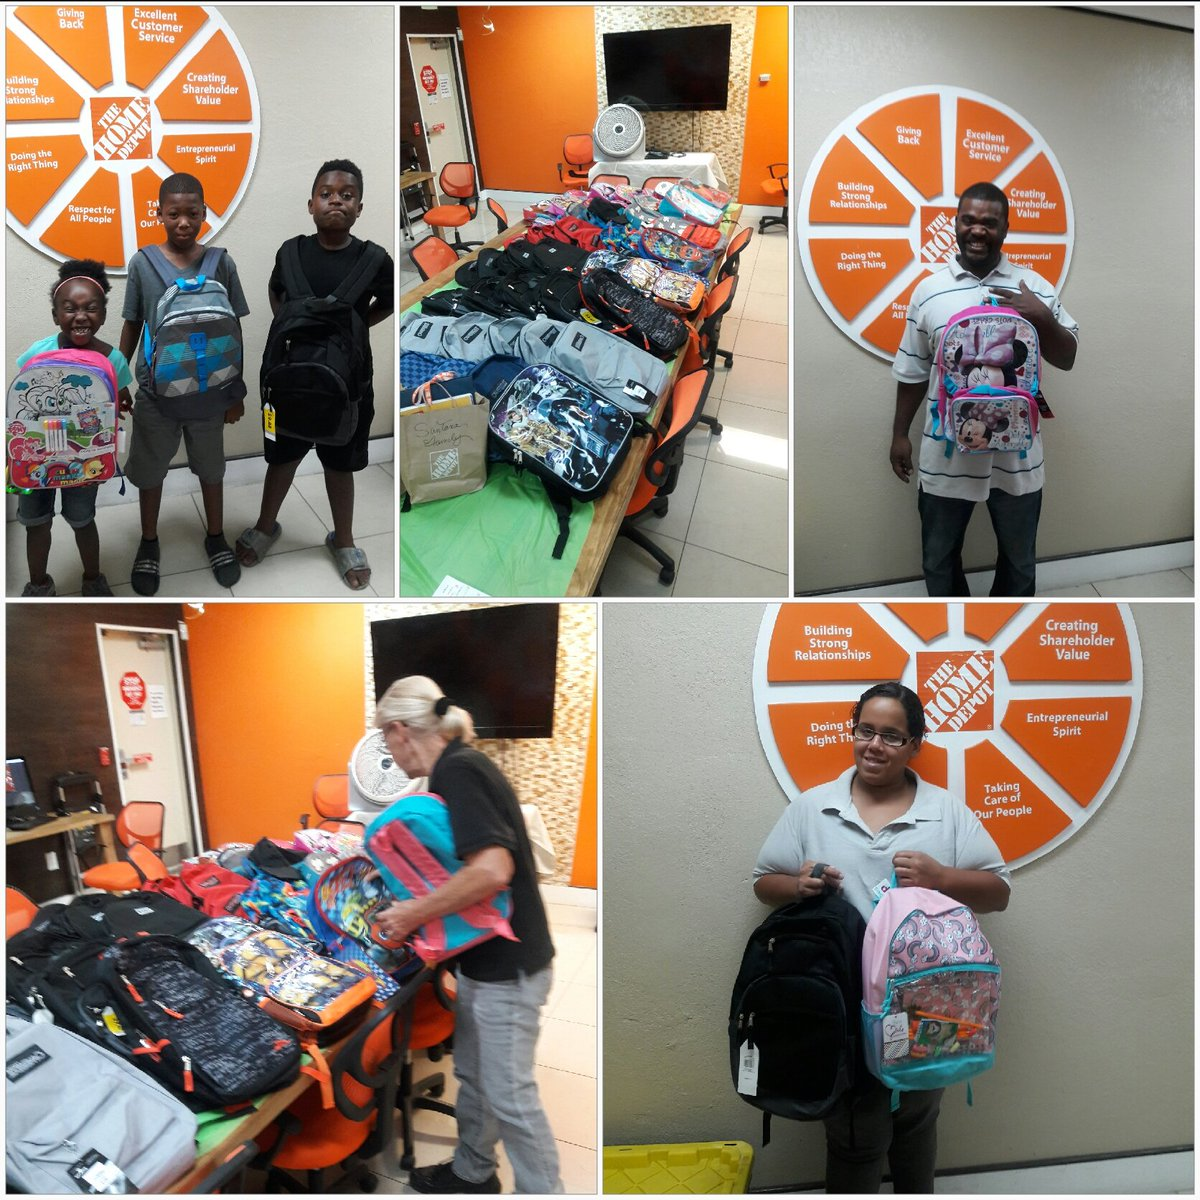 BACK 2 SCHOOL!! #VALUEWHEEL #TAKINGCAREOURPEOPLE #GIVING BACK #DOINGTHERIGHTTHING @avillan2915 @JCPerez1226 @TiffanyWolfer @trulycarlie<br>http://pic.twitter.com/szJcBbglLE